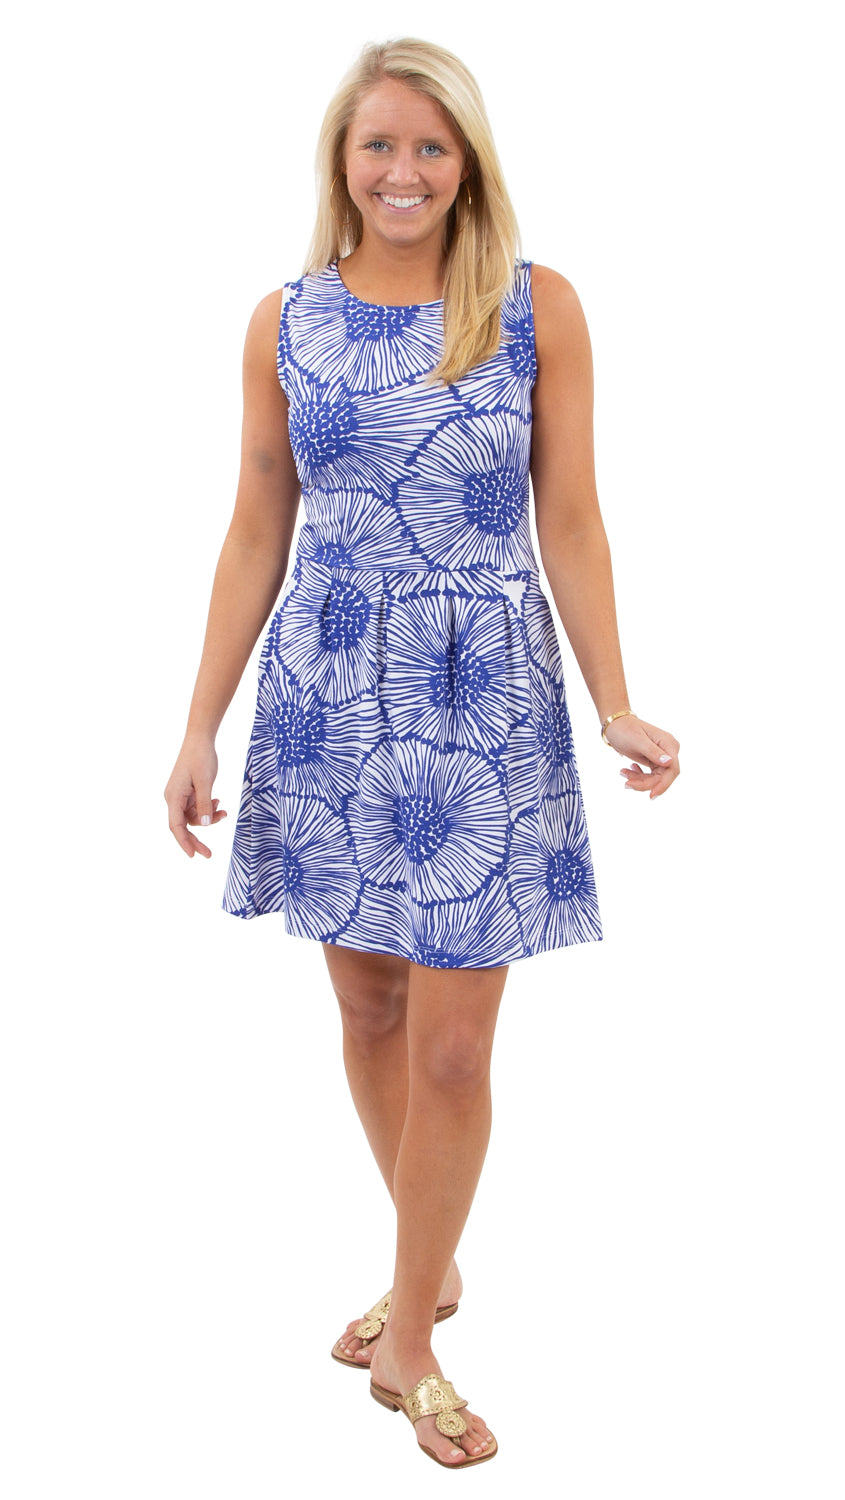 Boardwalk Dress - Dandelion